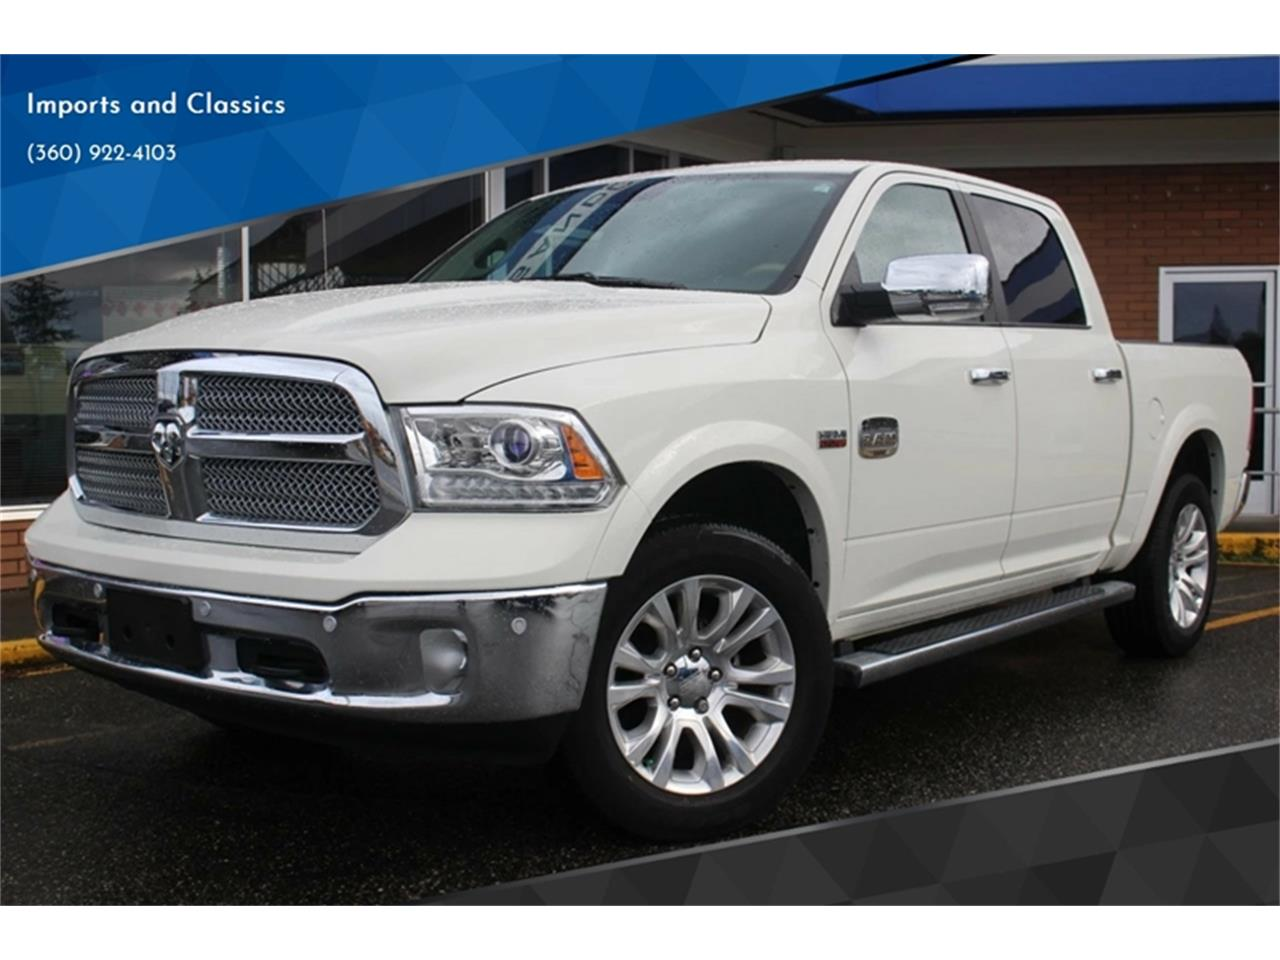 2017 Dodge Ram 1500 (CC-1181595) for sale in Lynden, Washington